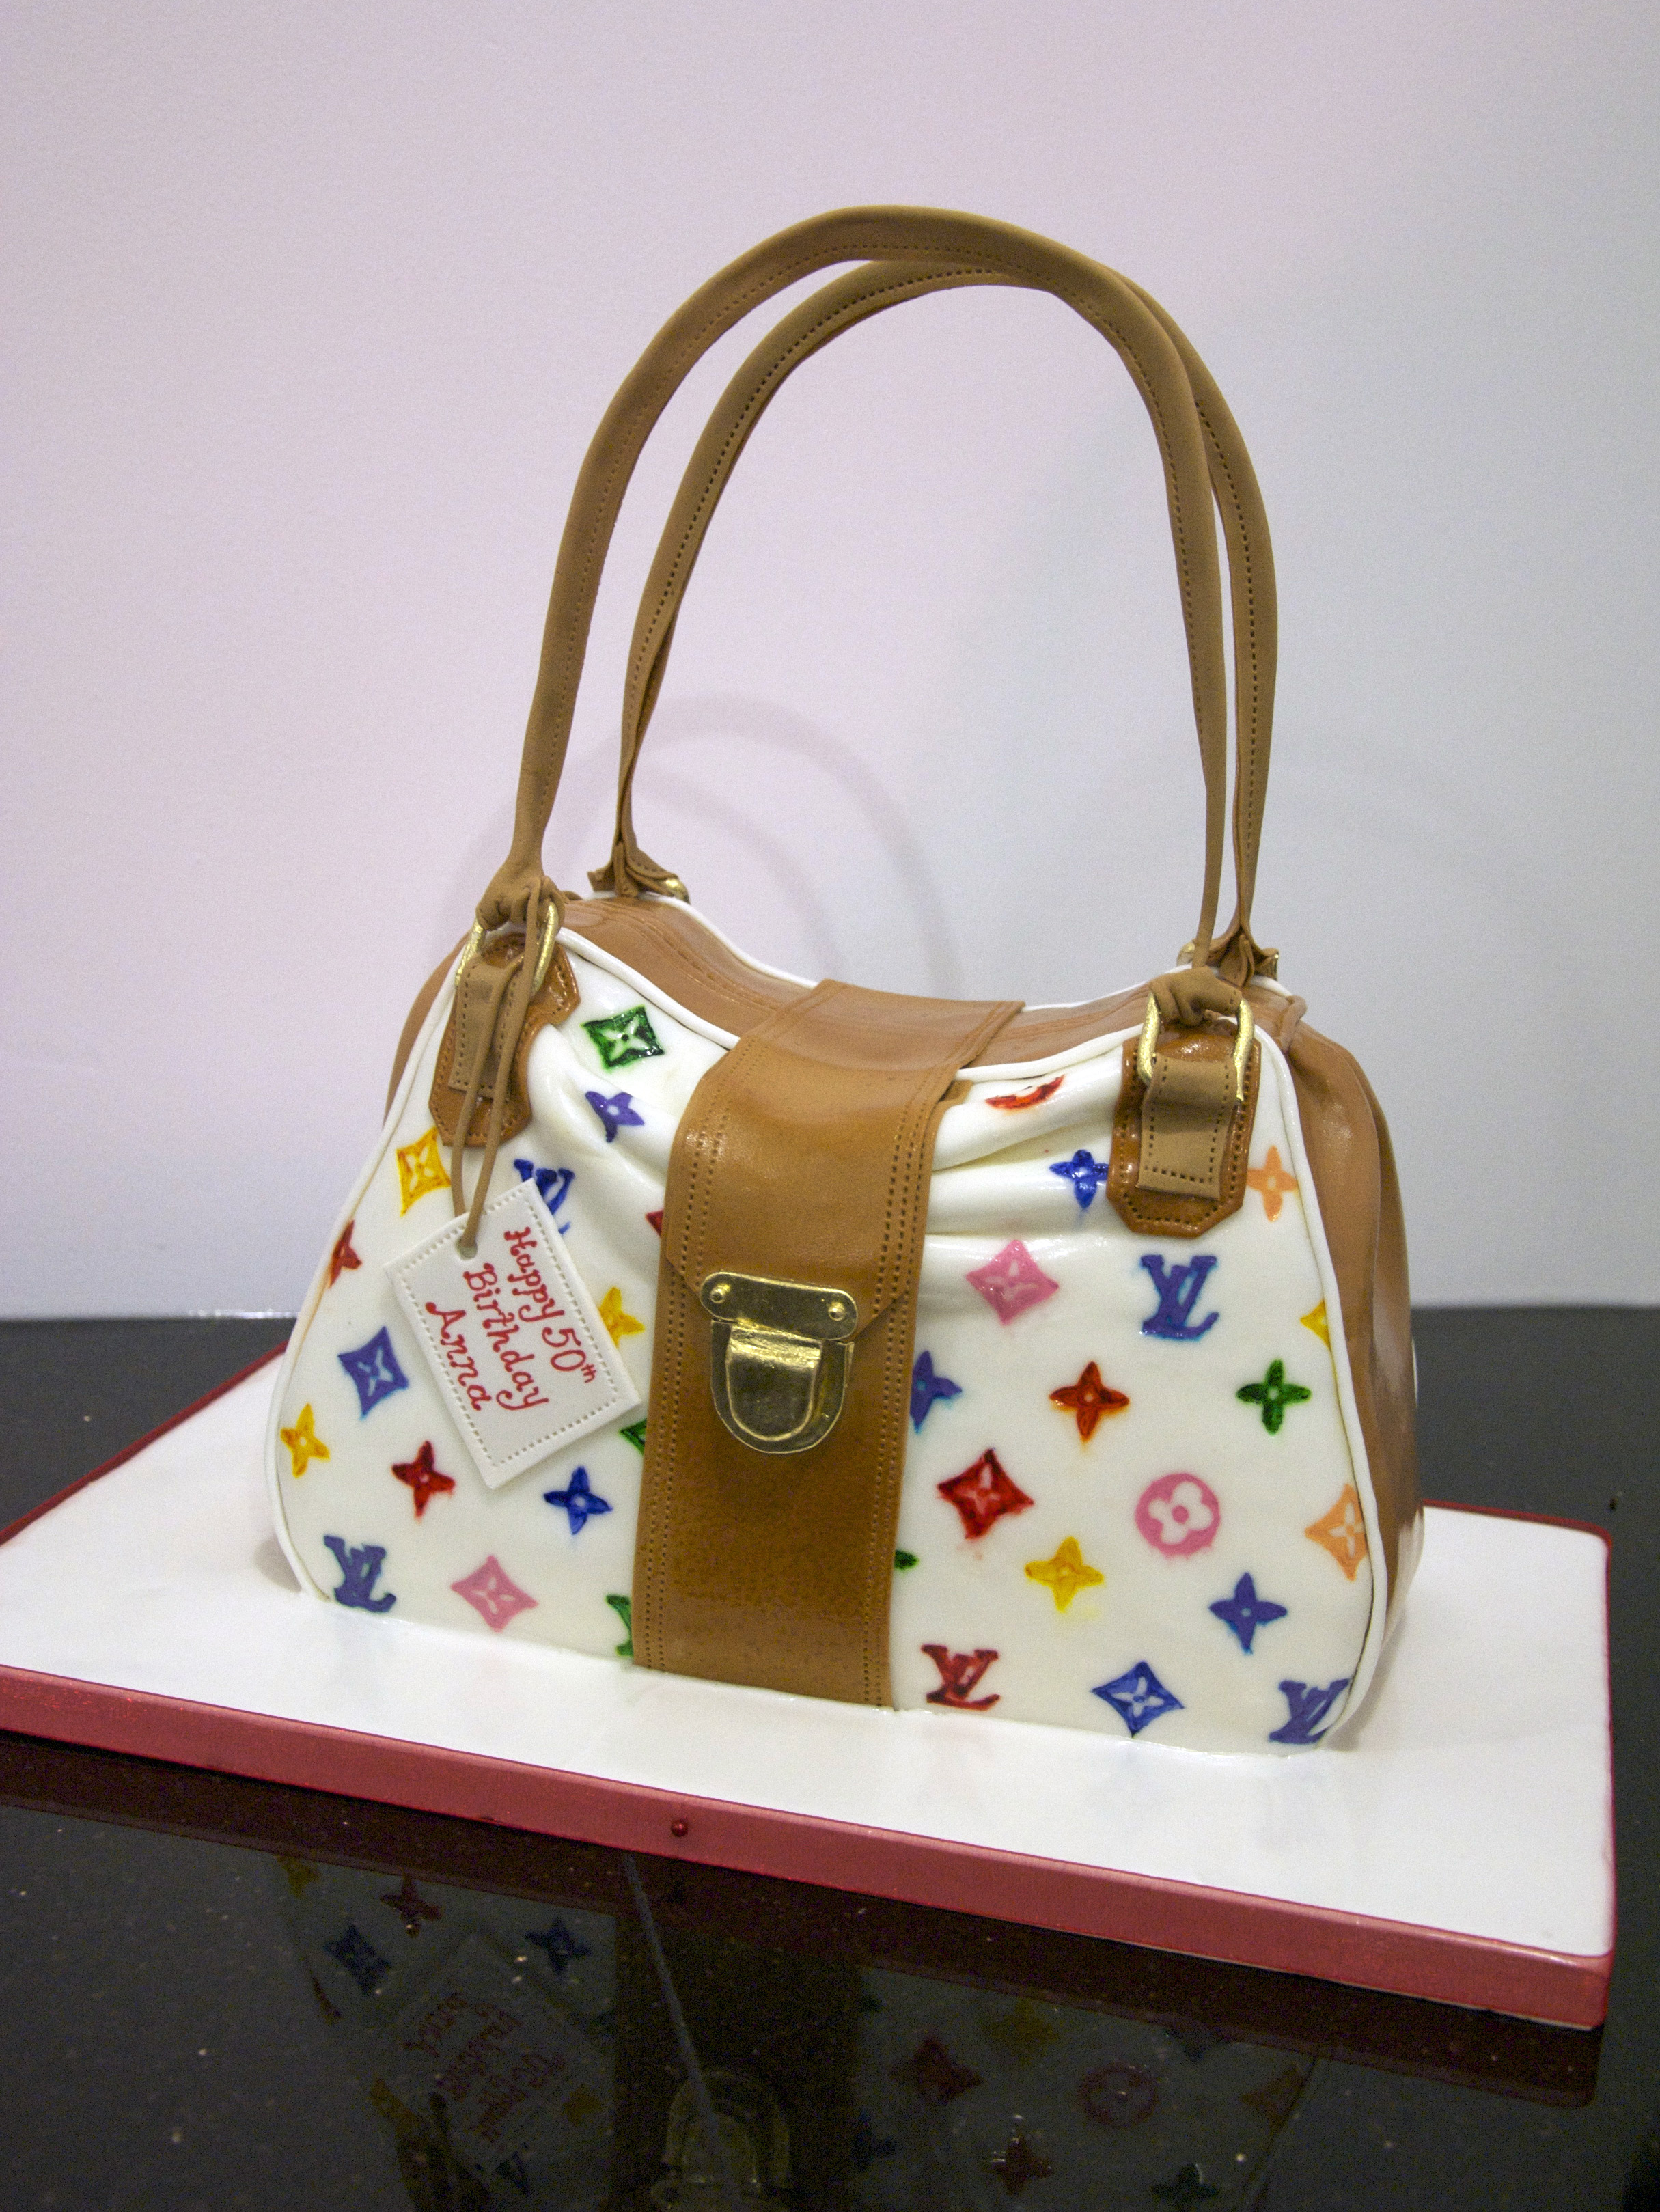 2c29fdc1096d louis vuitton handbag bag purse cake cakes cupcake designer luxury